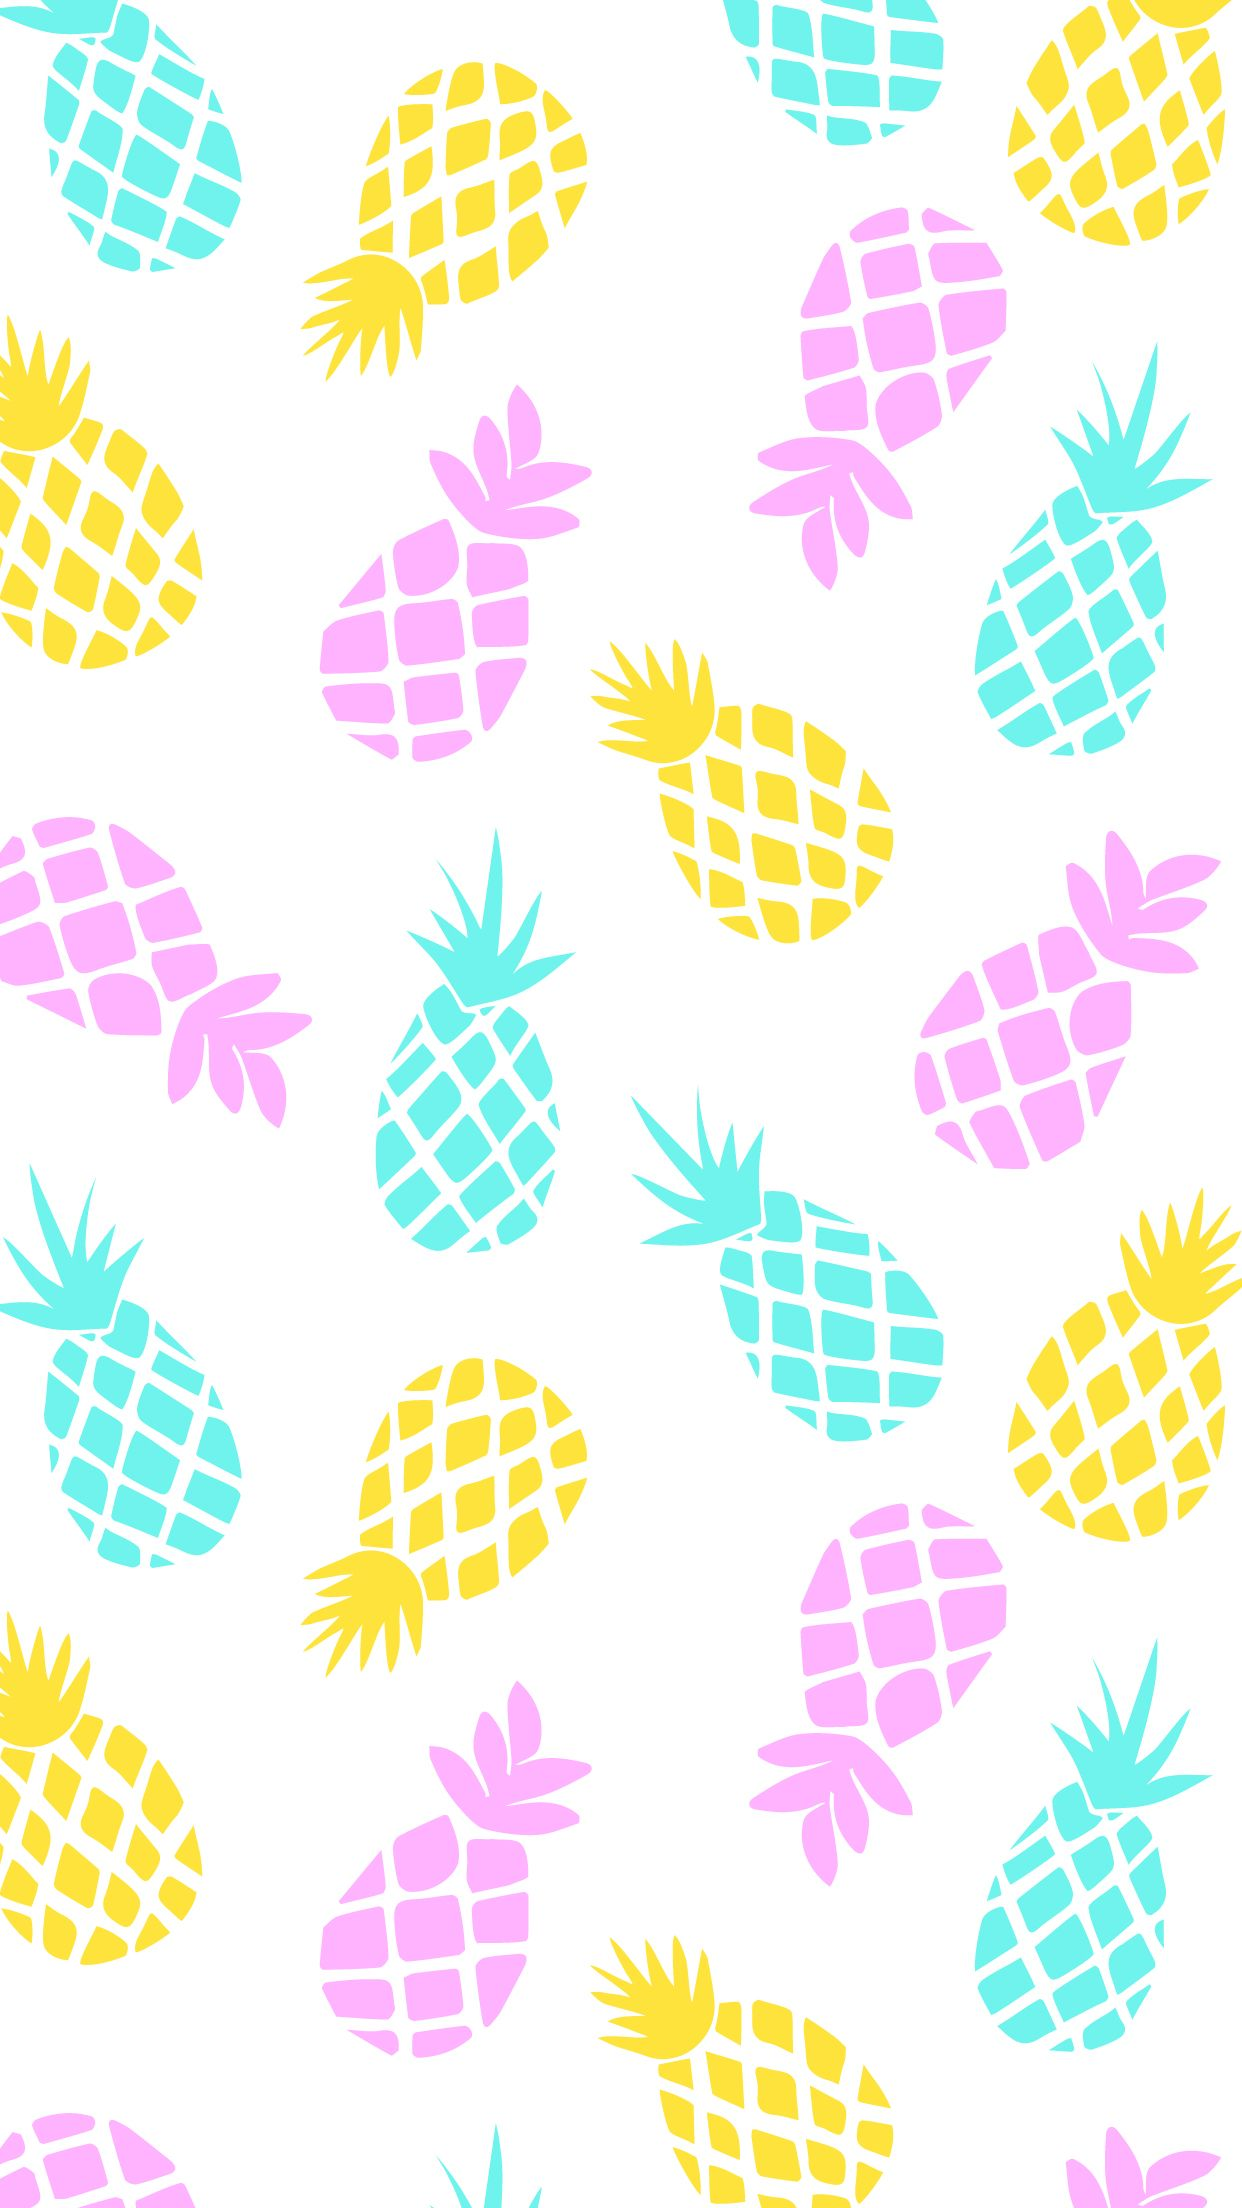 Wallpaper iphone pineapple - Find This Pin And More On Wallpaper By Larissa4281